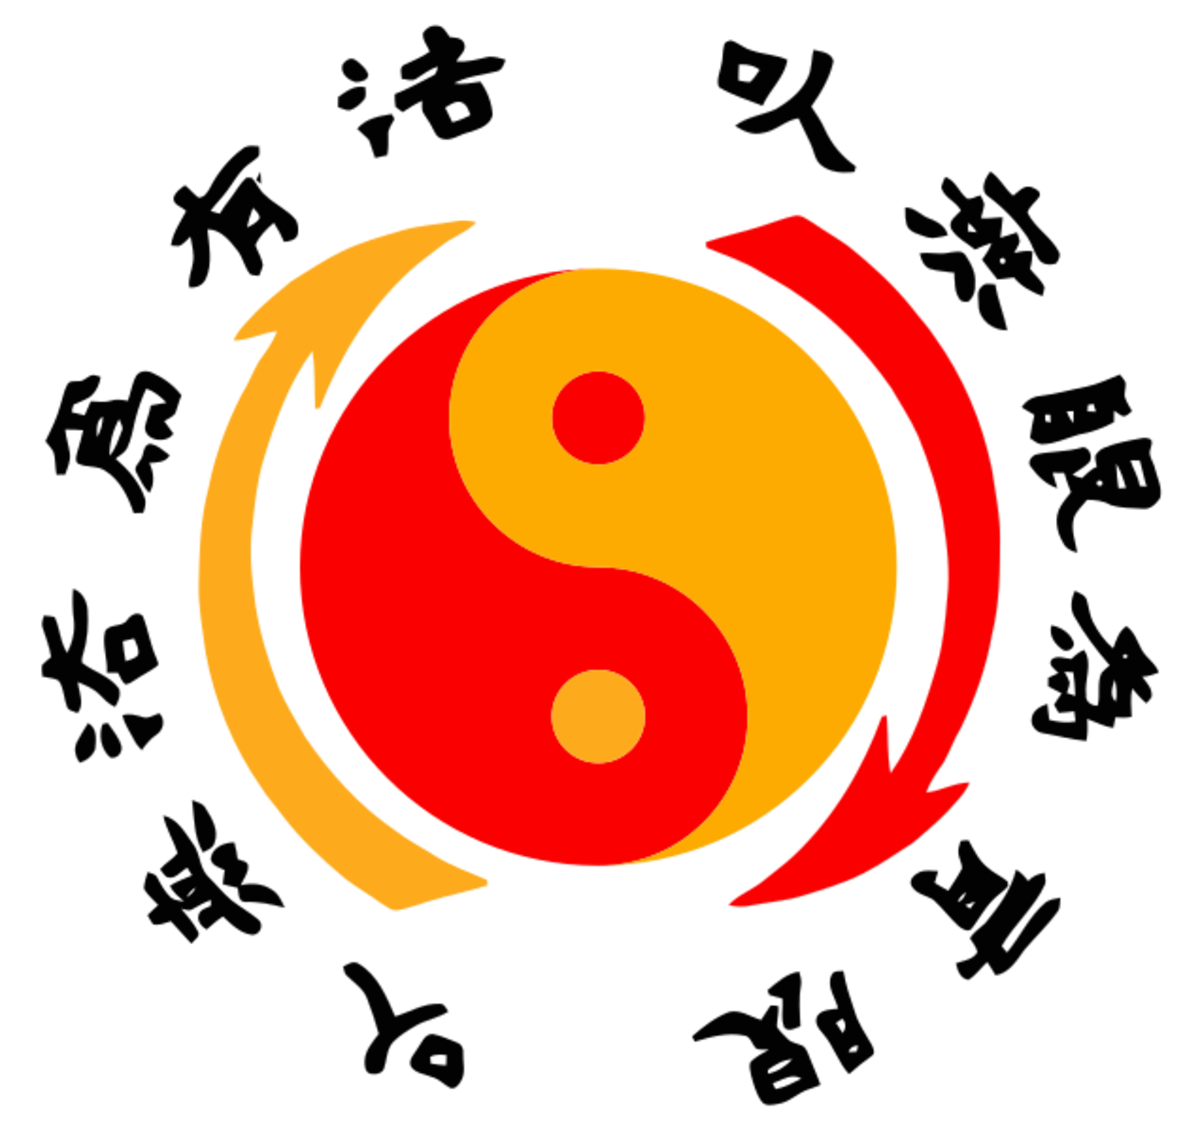 Jeet Kune Do uses symbolism similar to Tai Chi symbols, including Taoist Yin Yang.